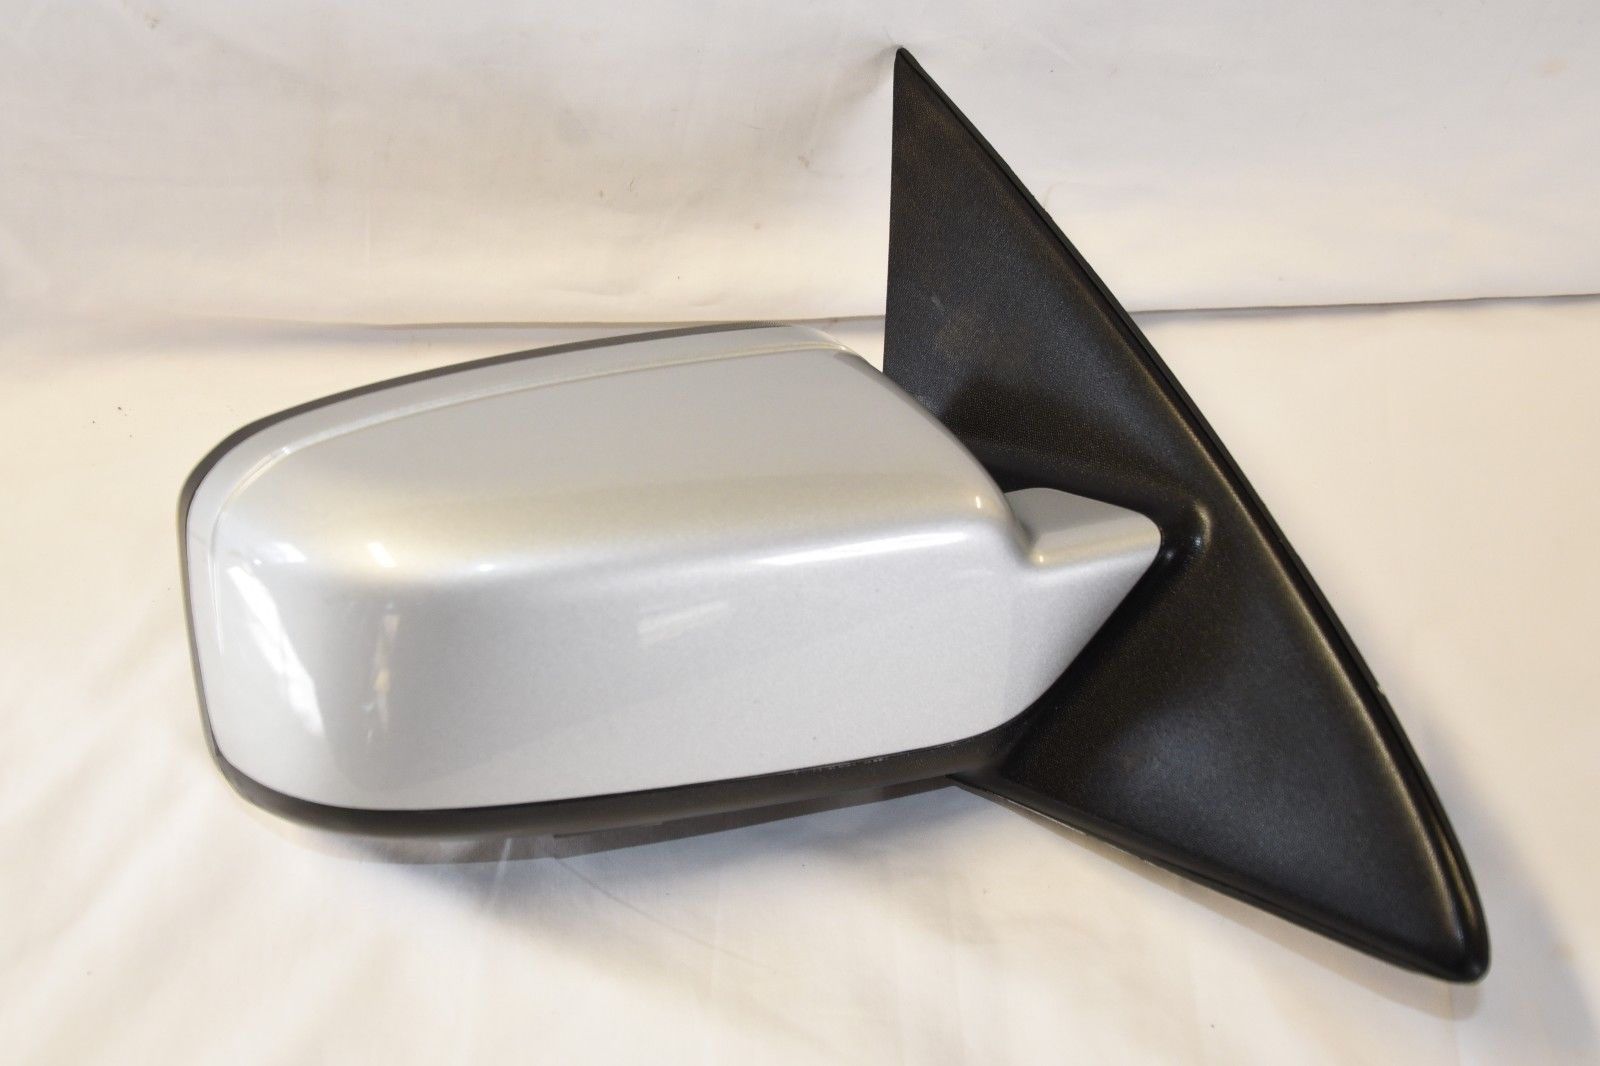 2010 2012 Ford Fusion Passenger Side Mirror Door Rear View Mirror